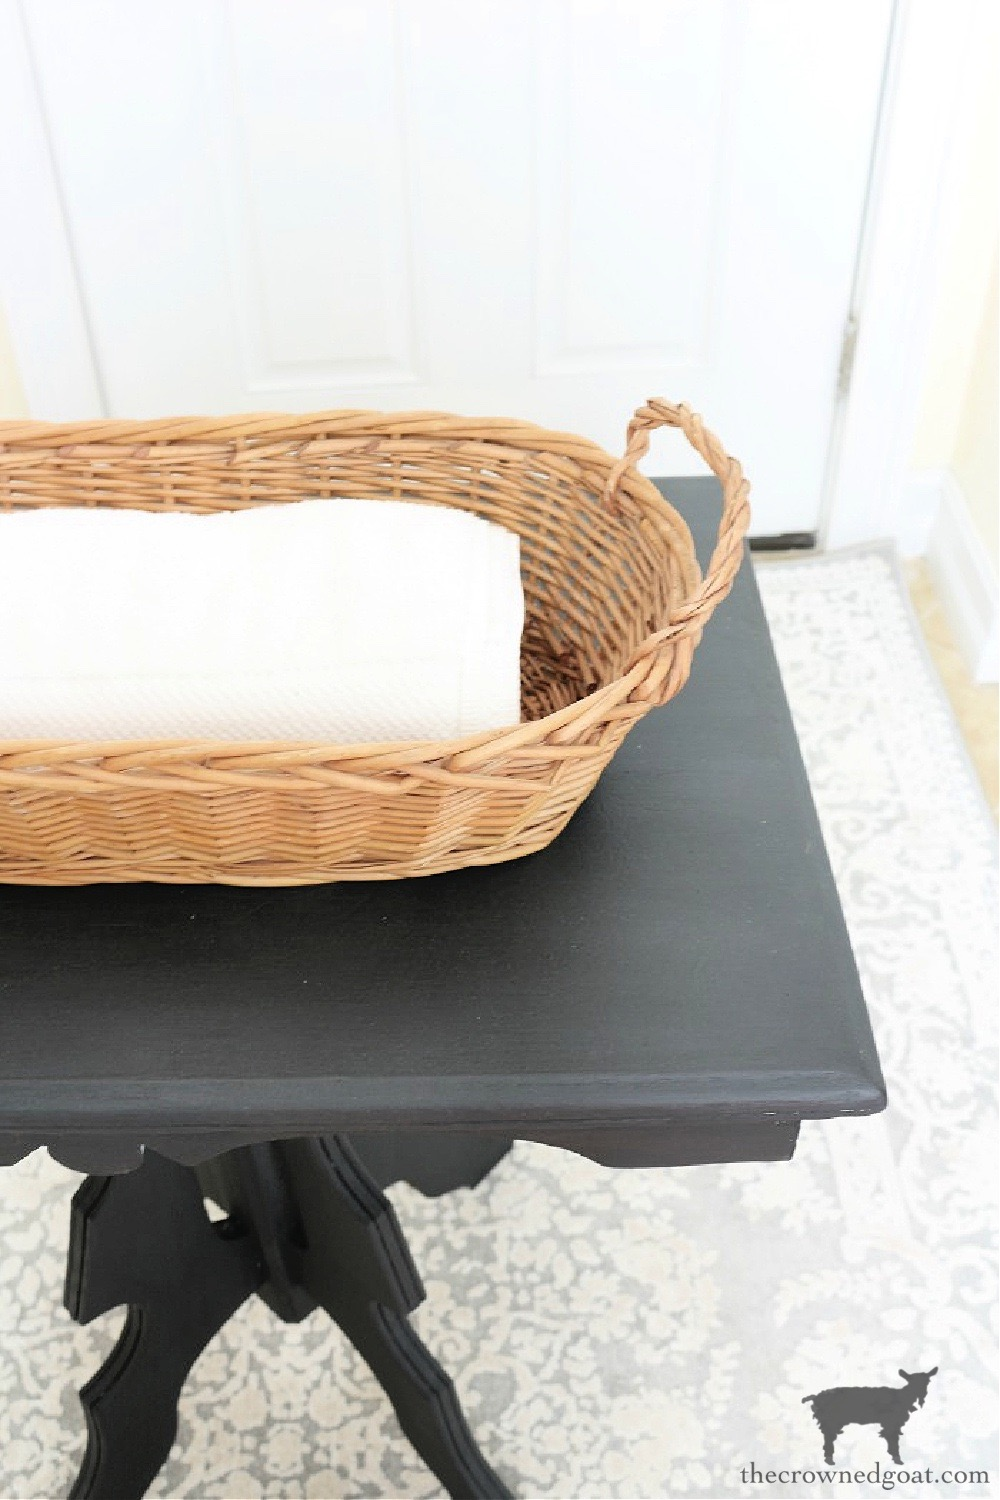 5 Key Spaces to Organize Before School Starts-Laundry Room Baskets and Bins-The Crowned Goat